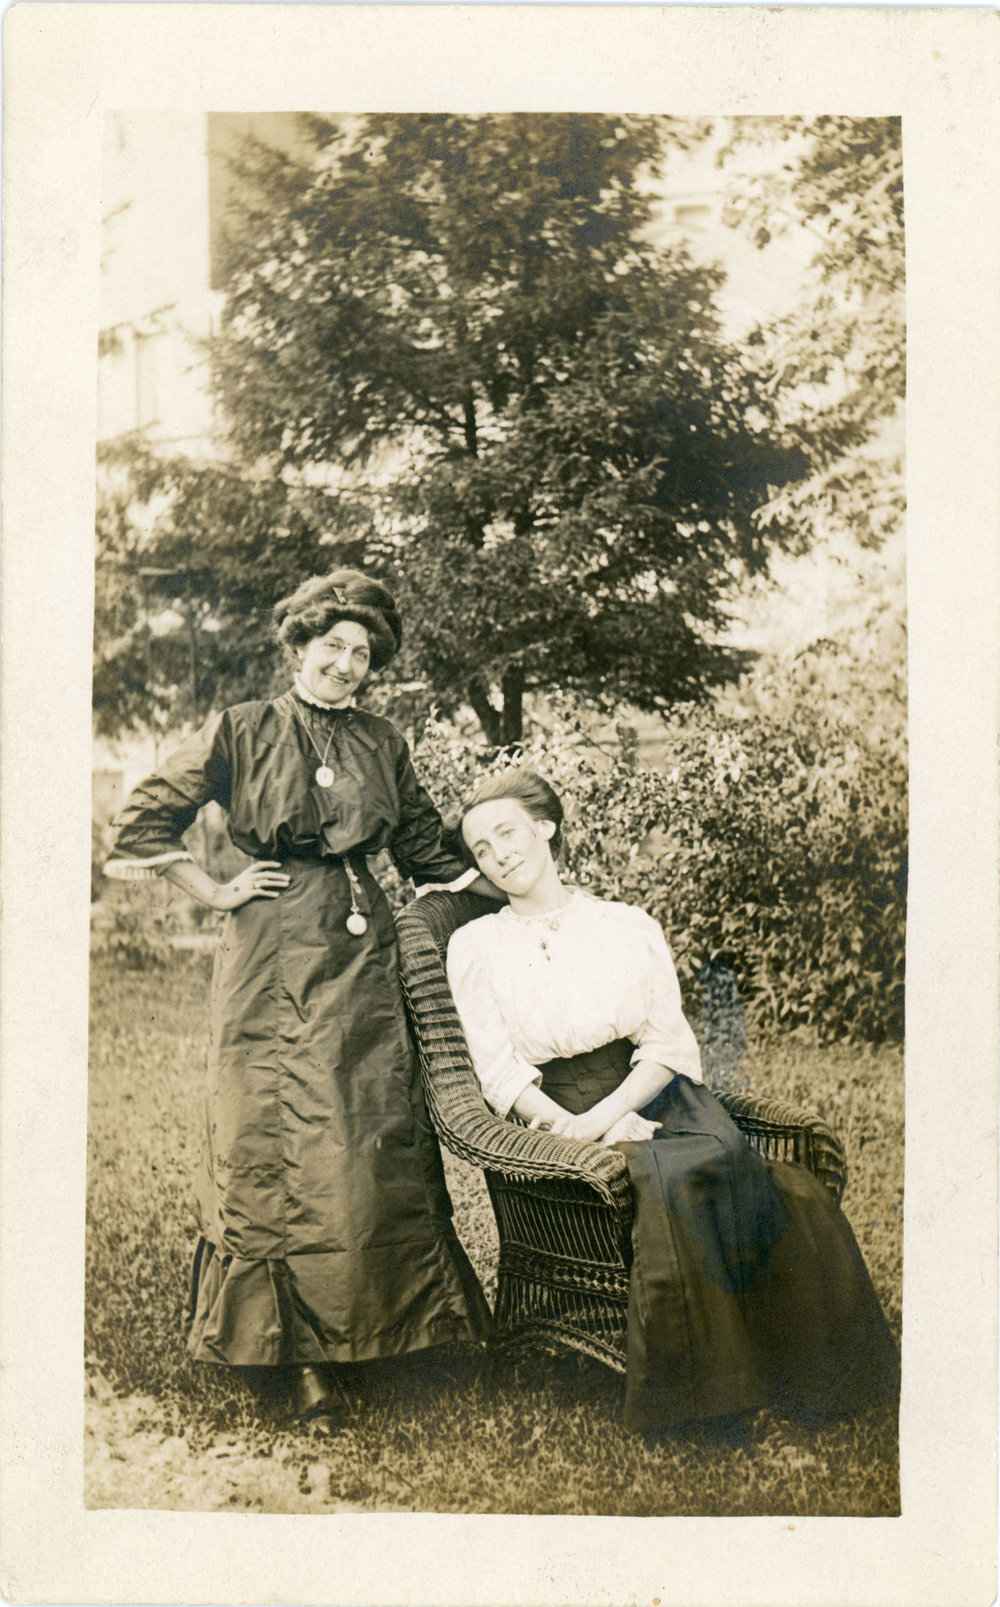 Bell (standing) with an unknown woman. Perhaps a daughter?